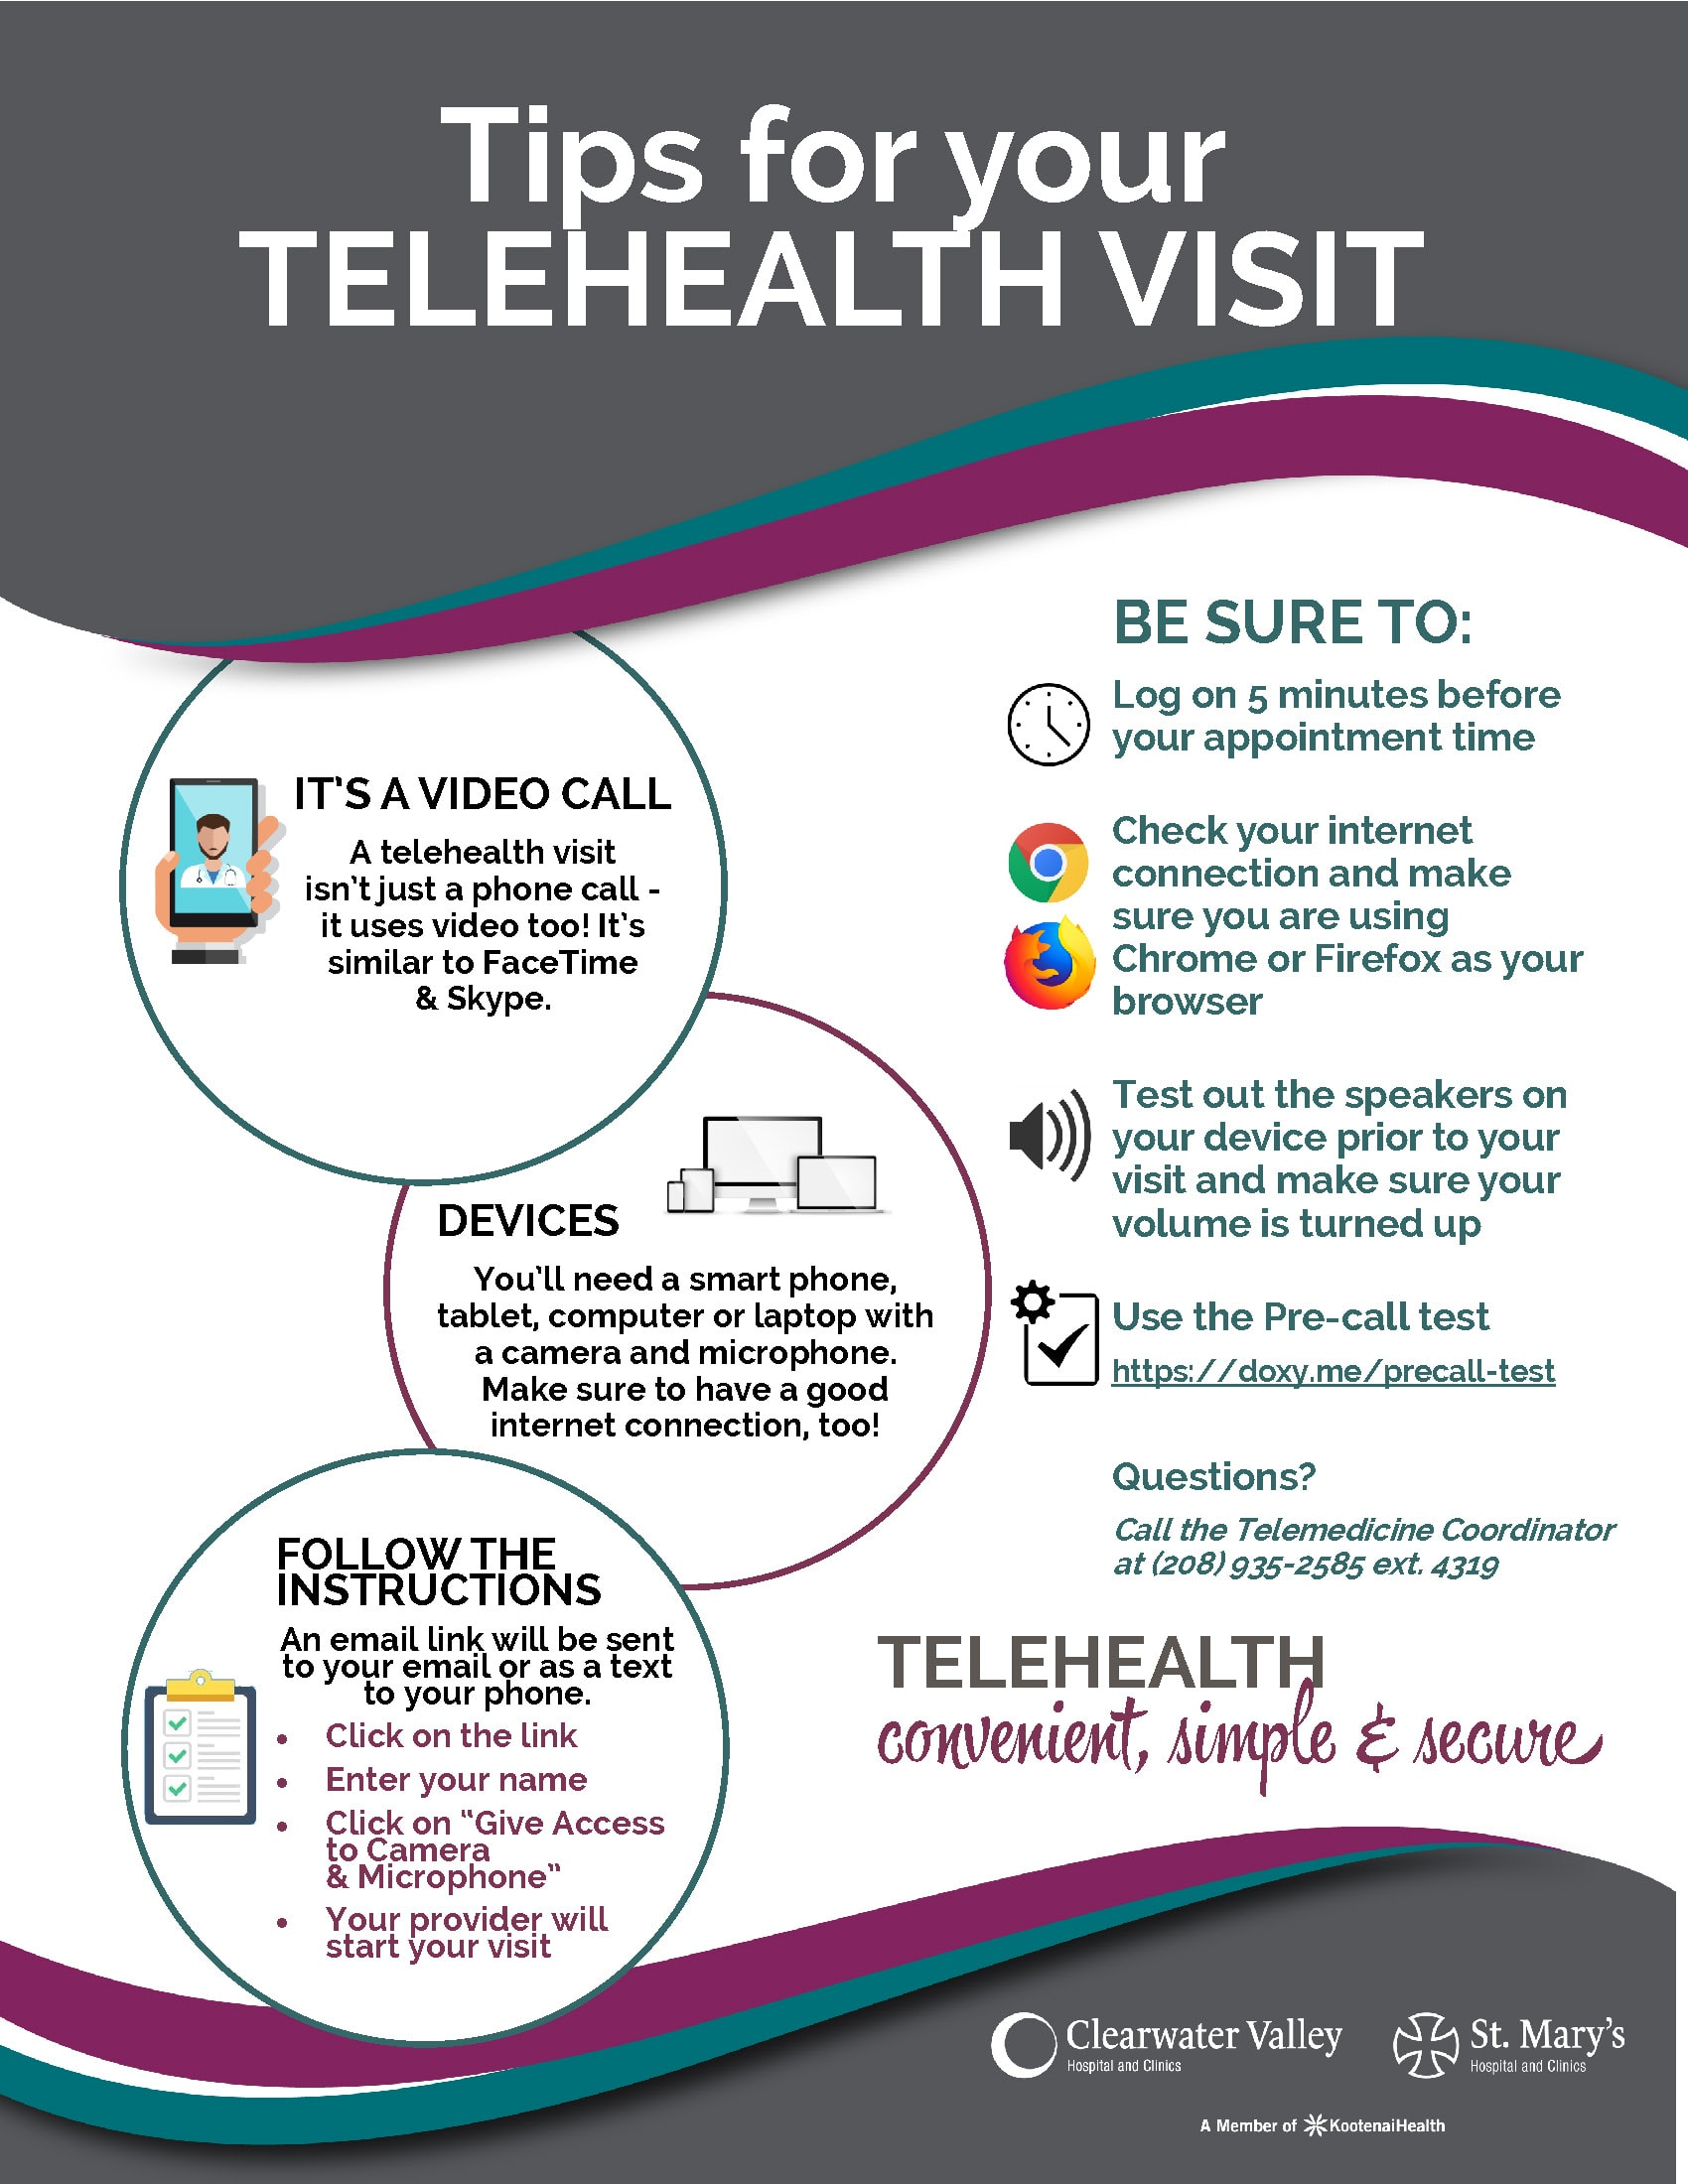 Tips for Telehealth Visit